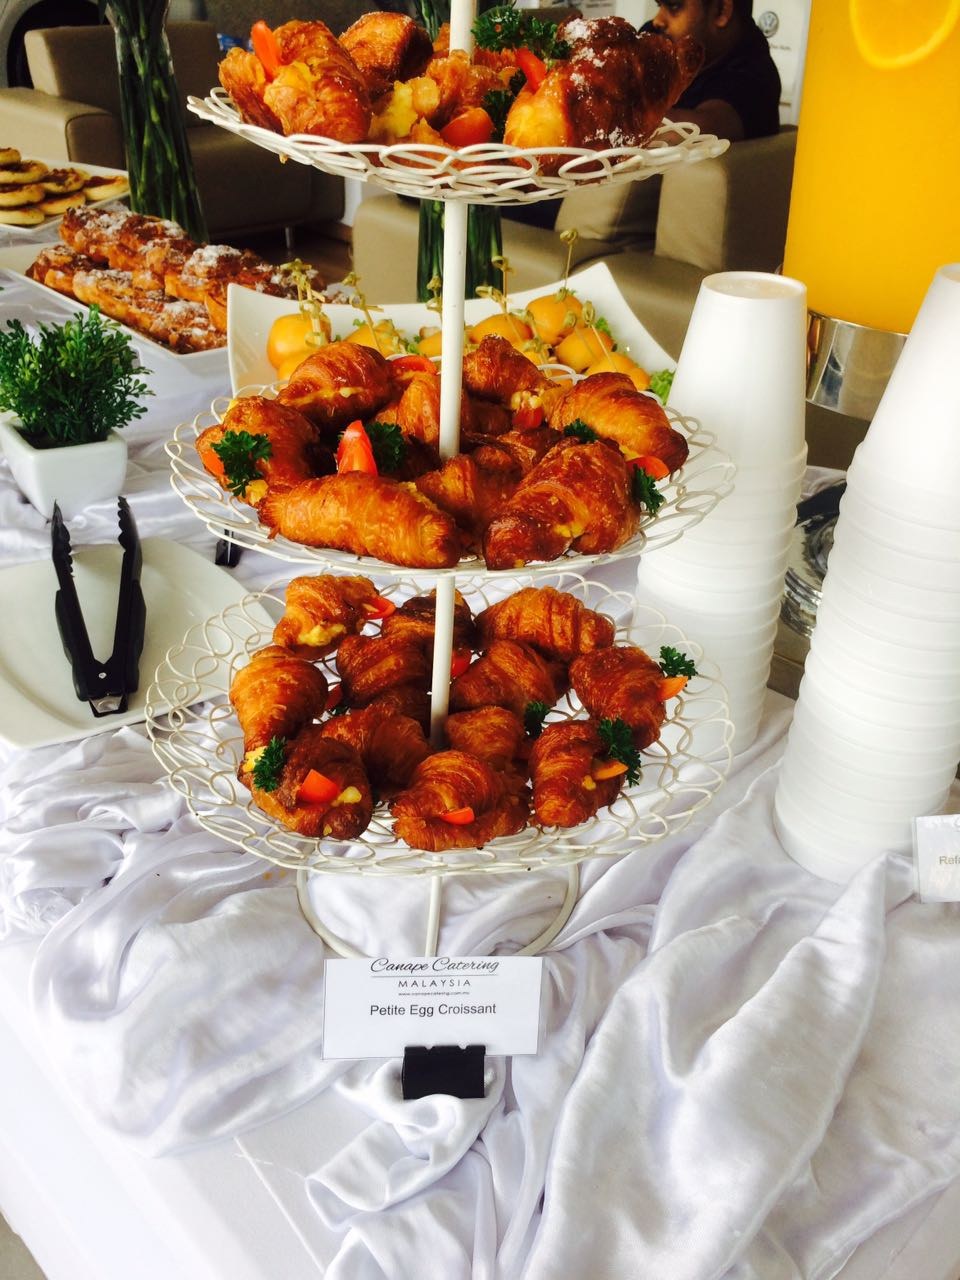 Foods gallery canap buffet food catering services in kl for Canape buffet menus